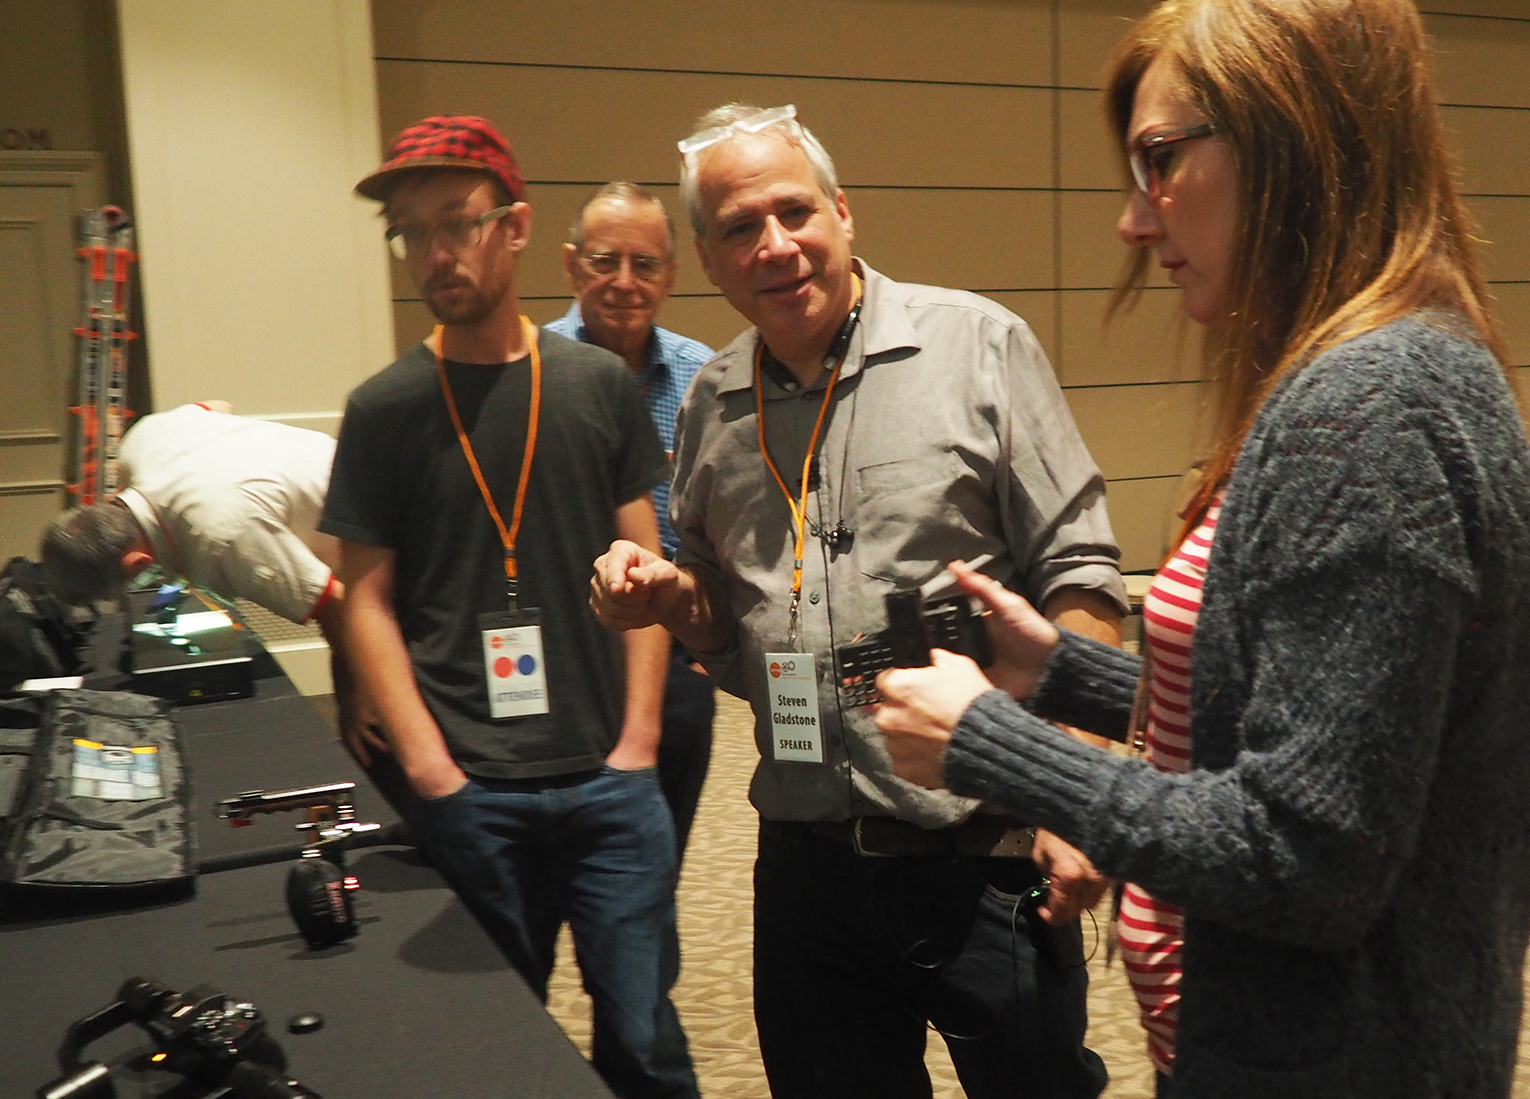 Steven walks through some of the demonstrated gear with workshop attendees, during the hands-on portion of the seminar.